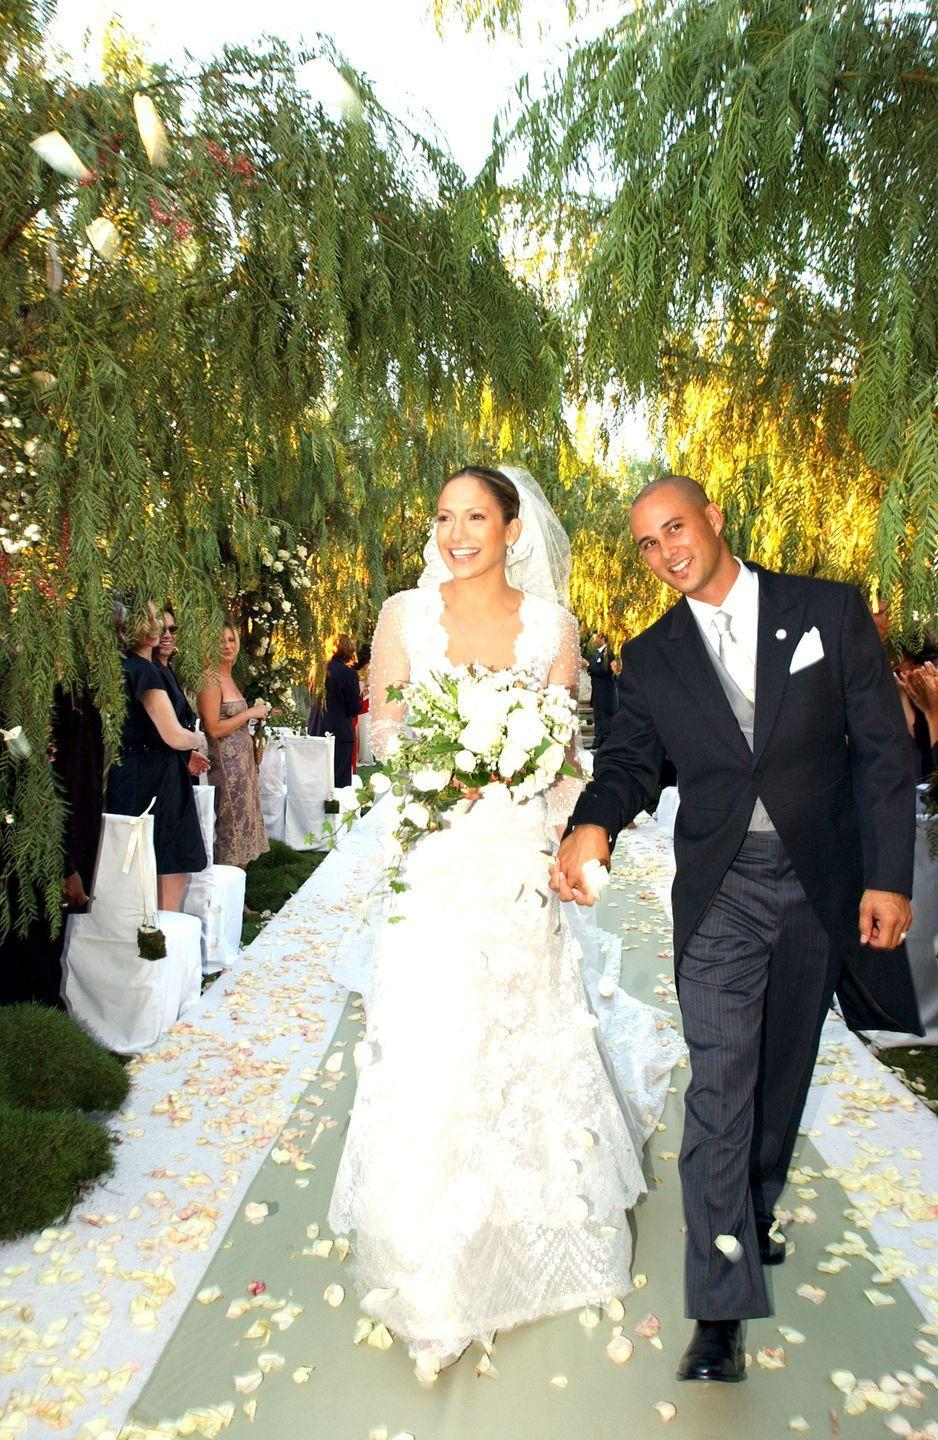 """<p>After meeting in late 2000, Jennifer Lopez and Cris Judd, a former backup dancer, married in a private residence in Calabasas, California, on September 29, 2001. The two had met in Spain in late 2000, when Judd was hired to direct her music video for """"Love Don't Cost a Thing."""" They divorced in June 2002.</p>"""